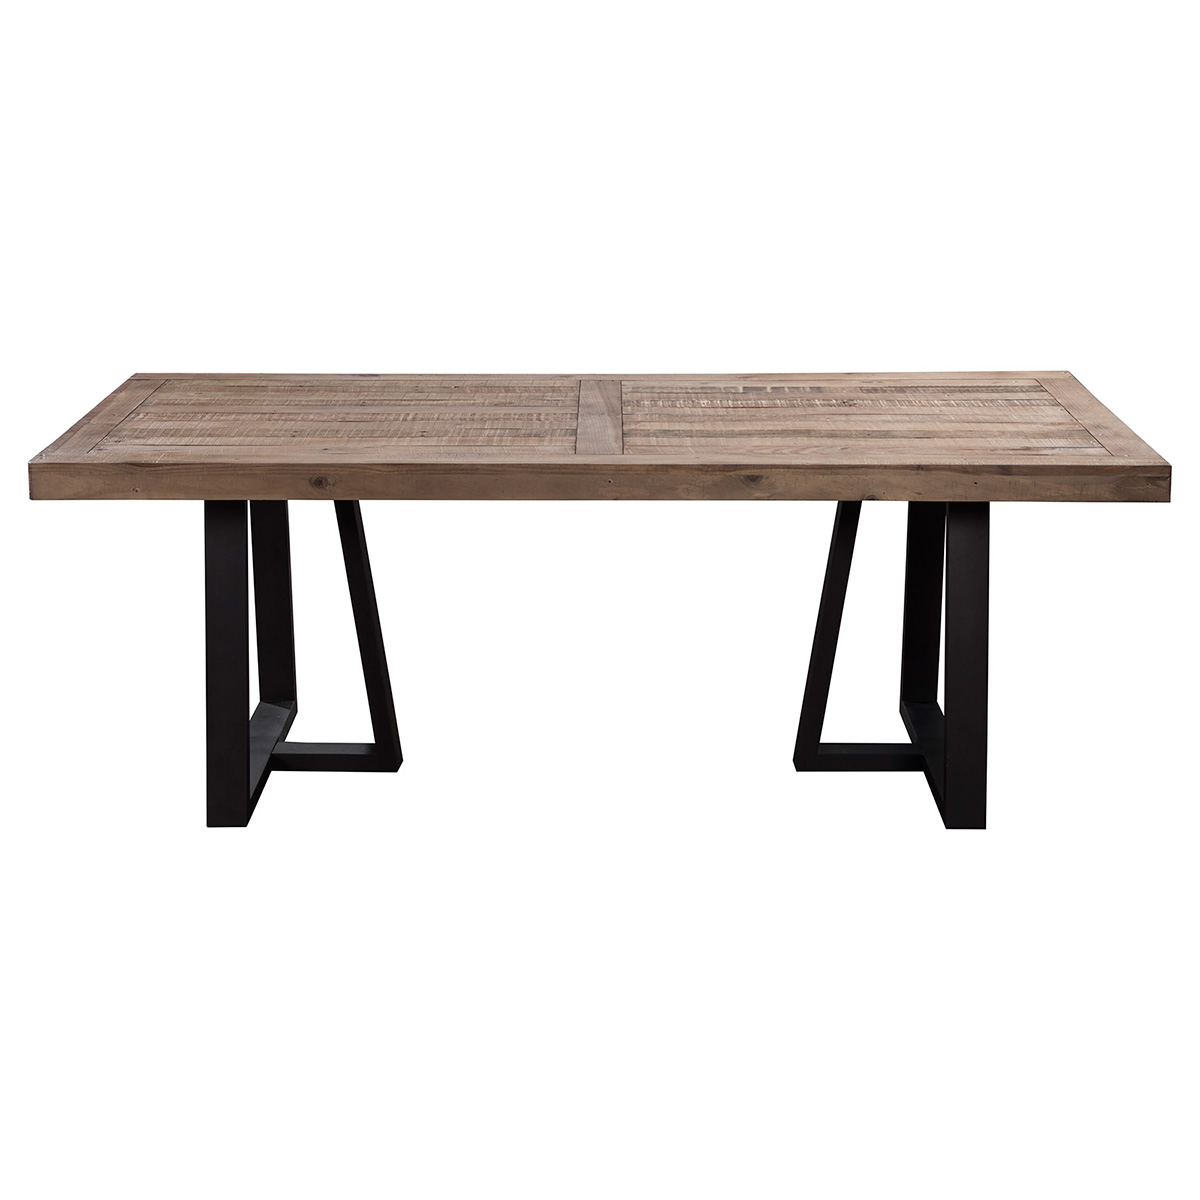 Prairie Rectangular Dining Table W Reclaimed Natural Pine Top On Black Base By Alpine Furniture